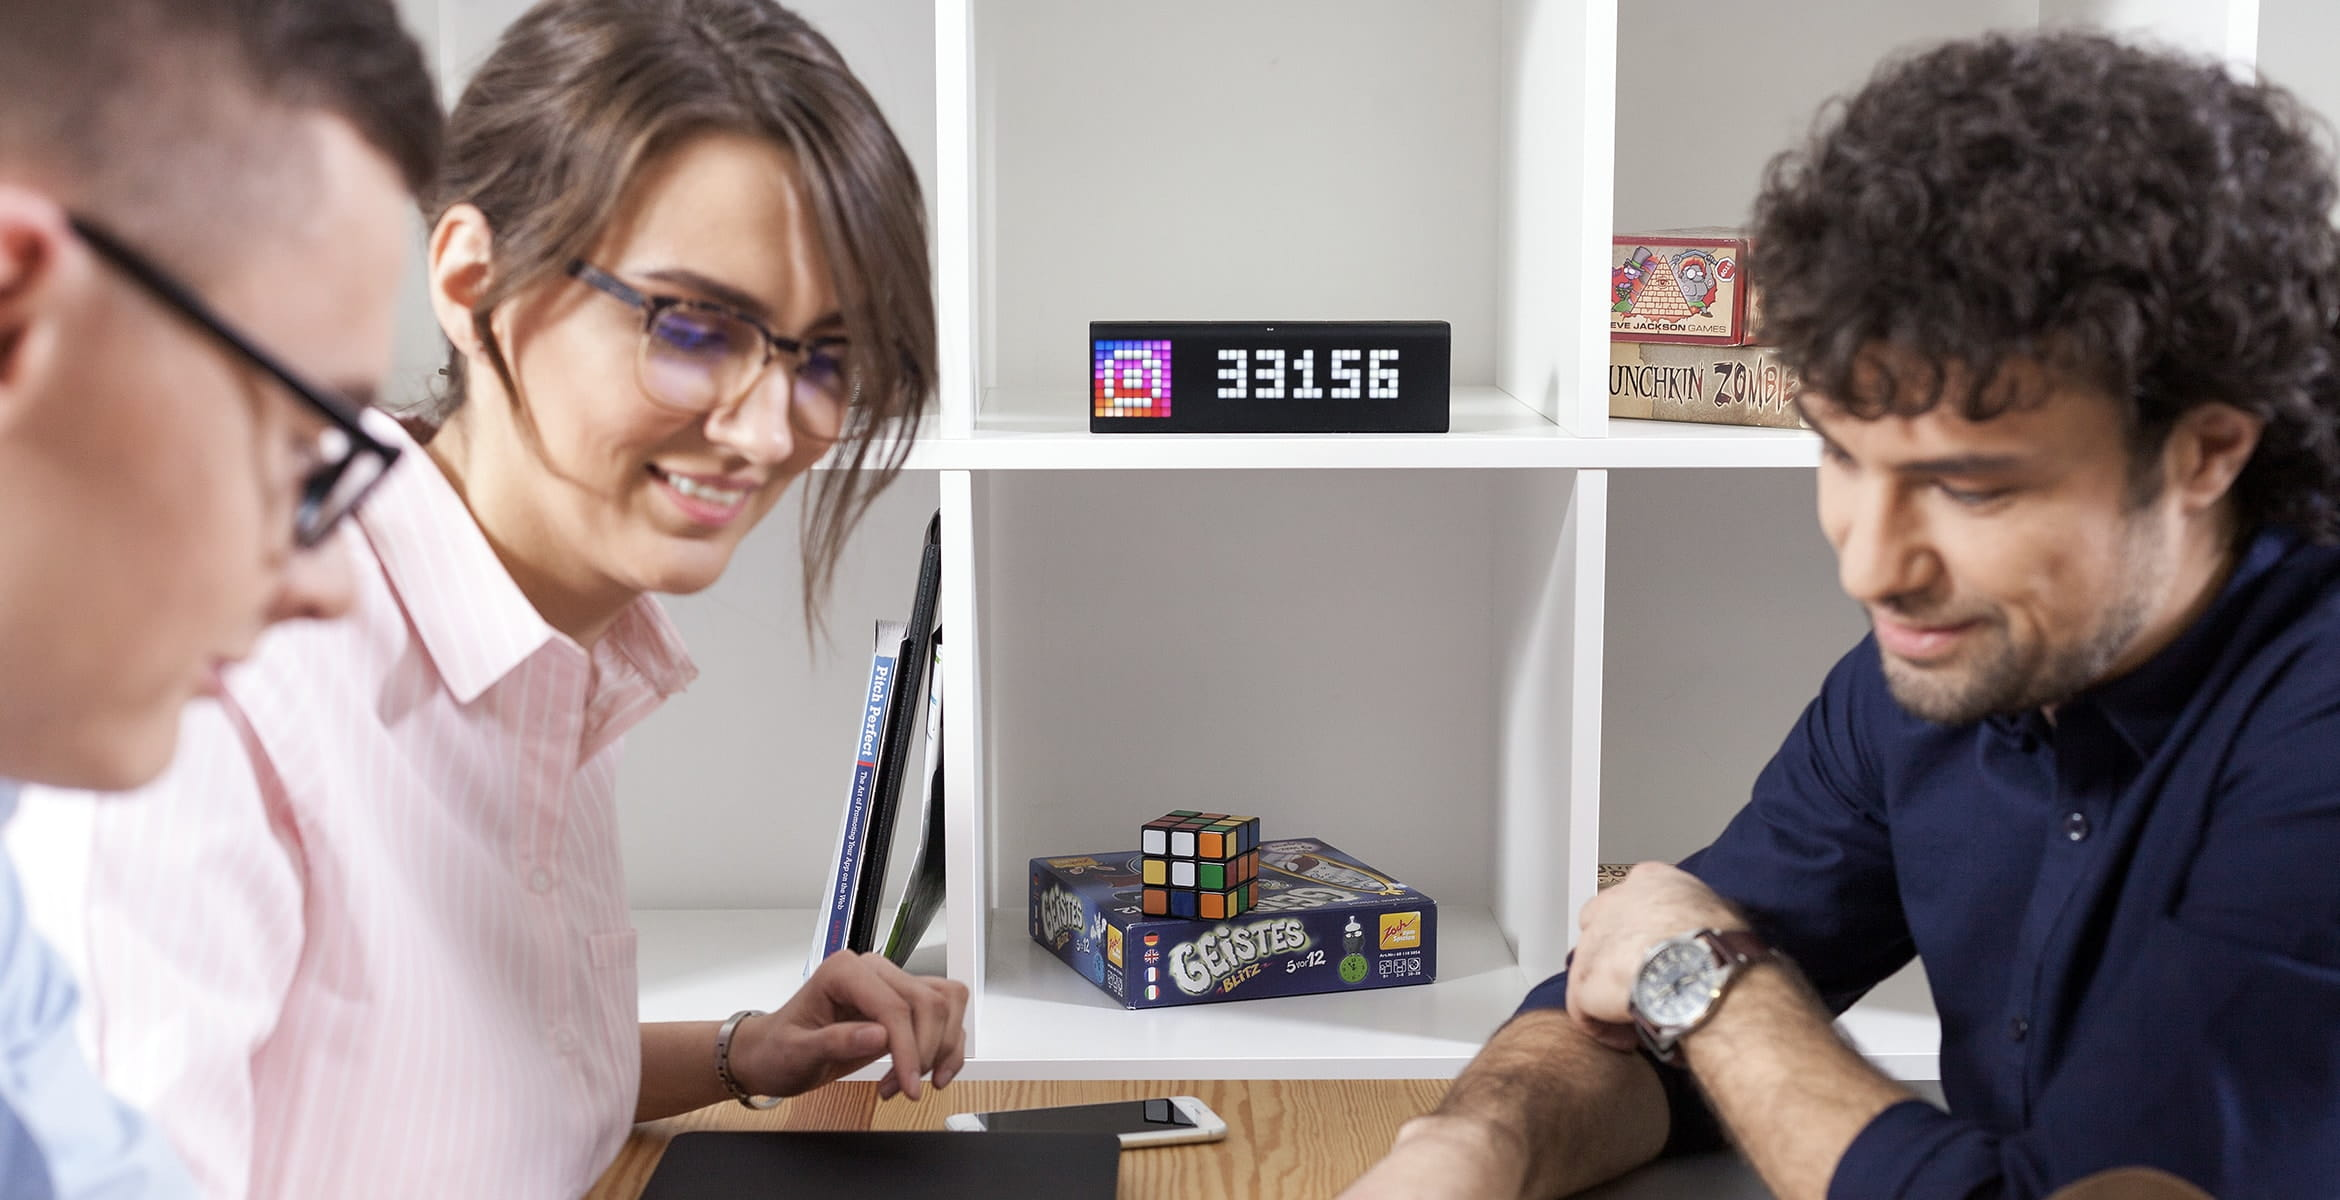 LaMetric Time smart clock, placed in a shelf, displays people follower count for the Instagram